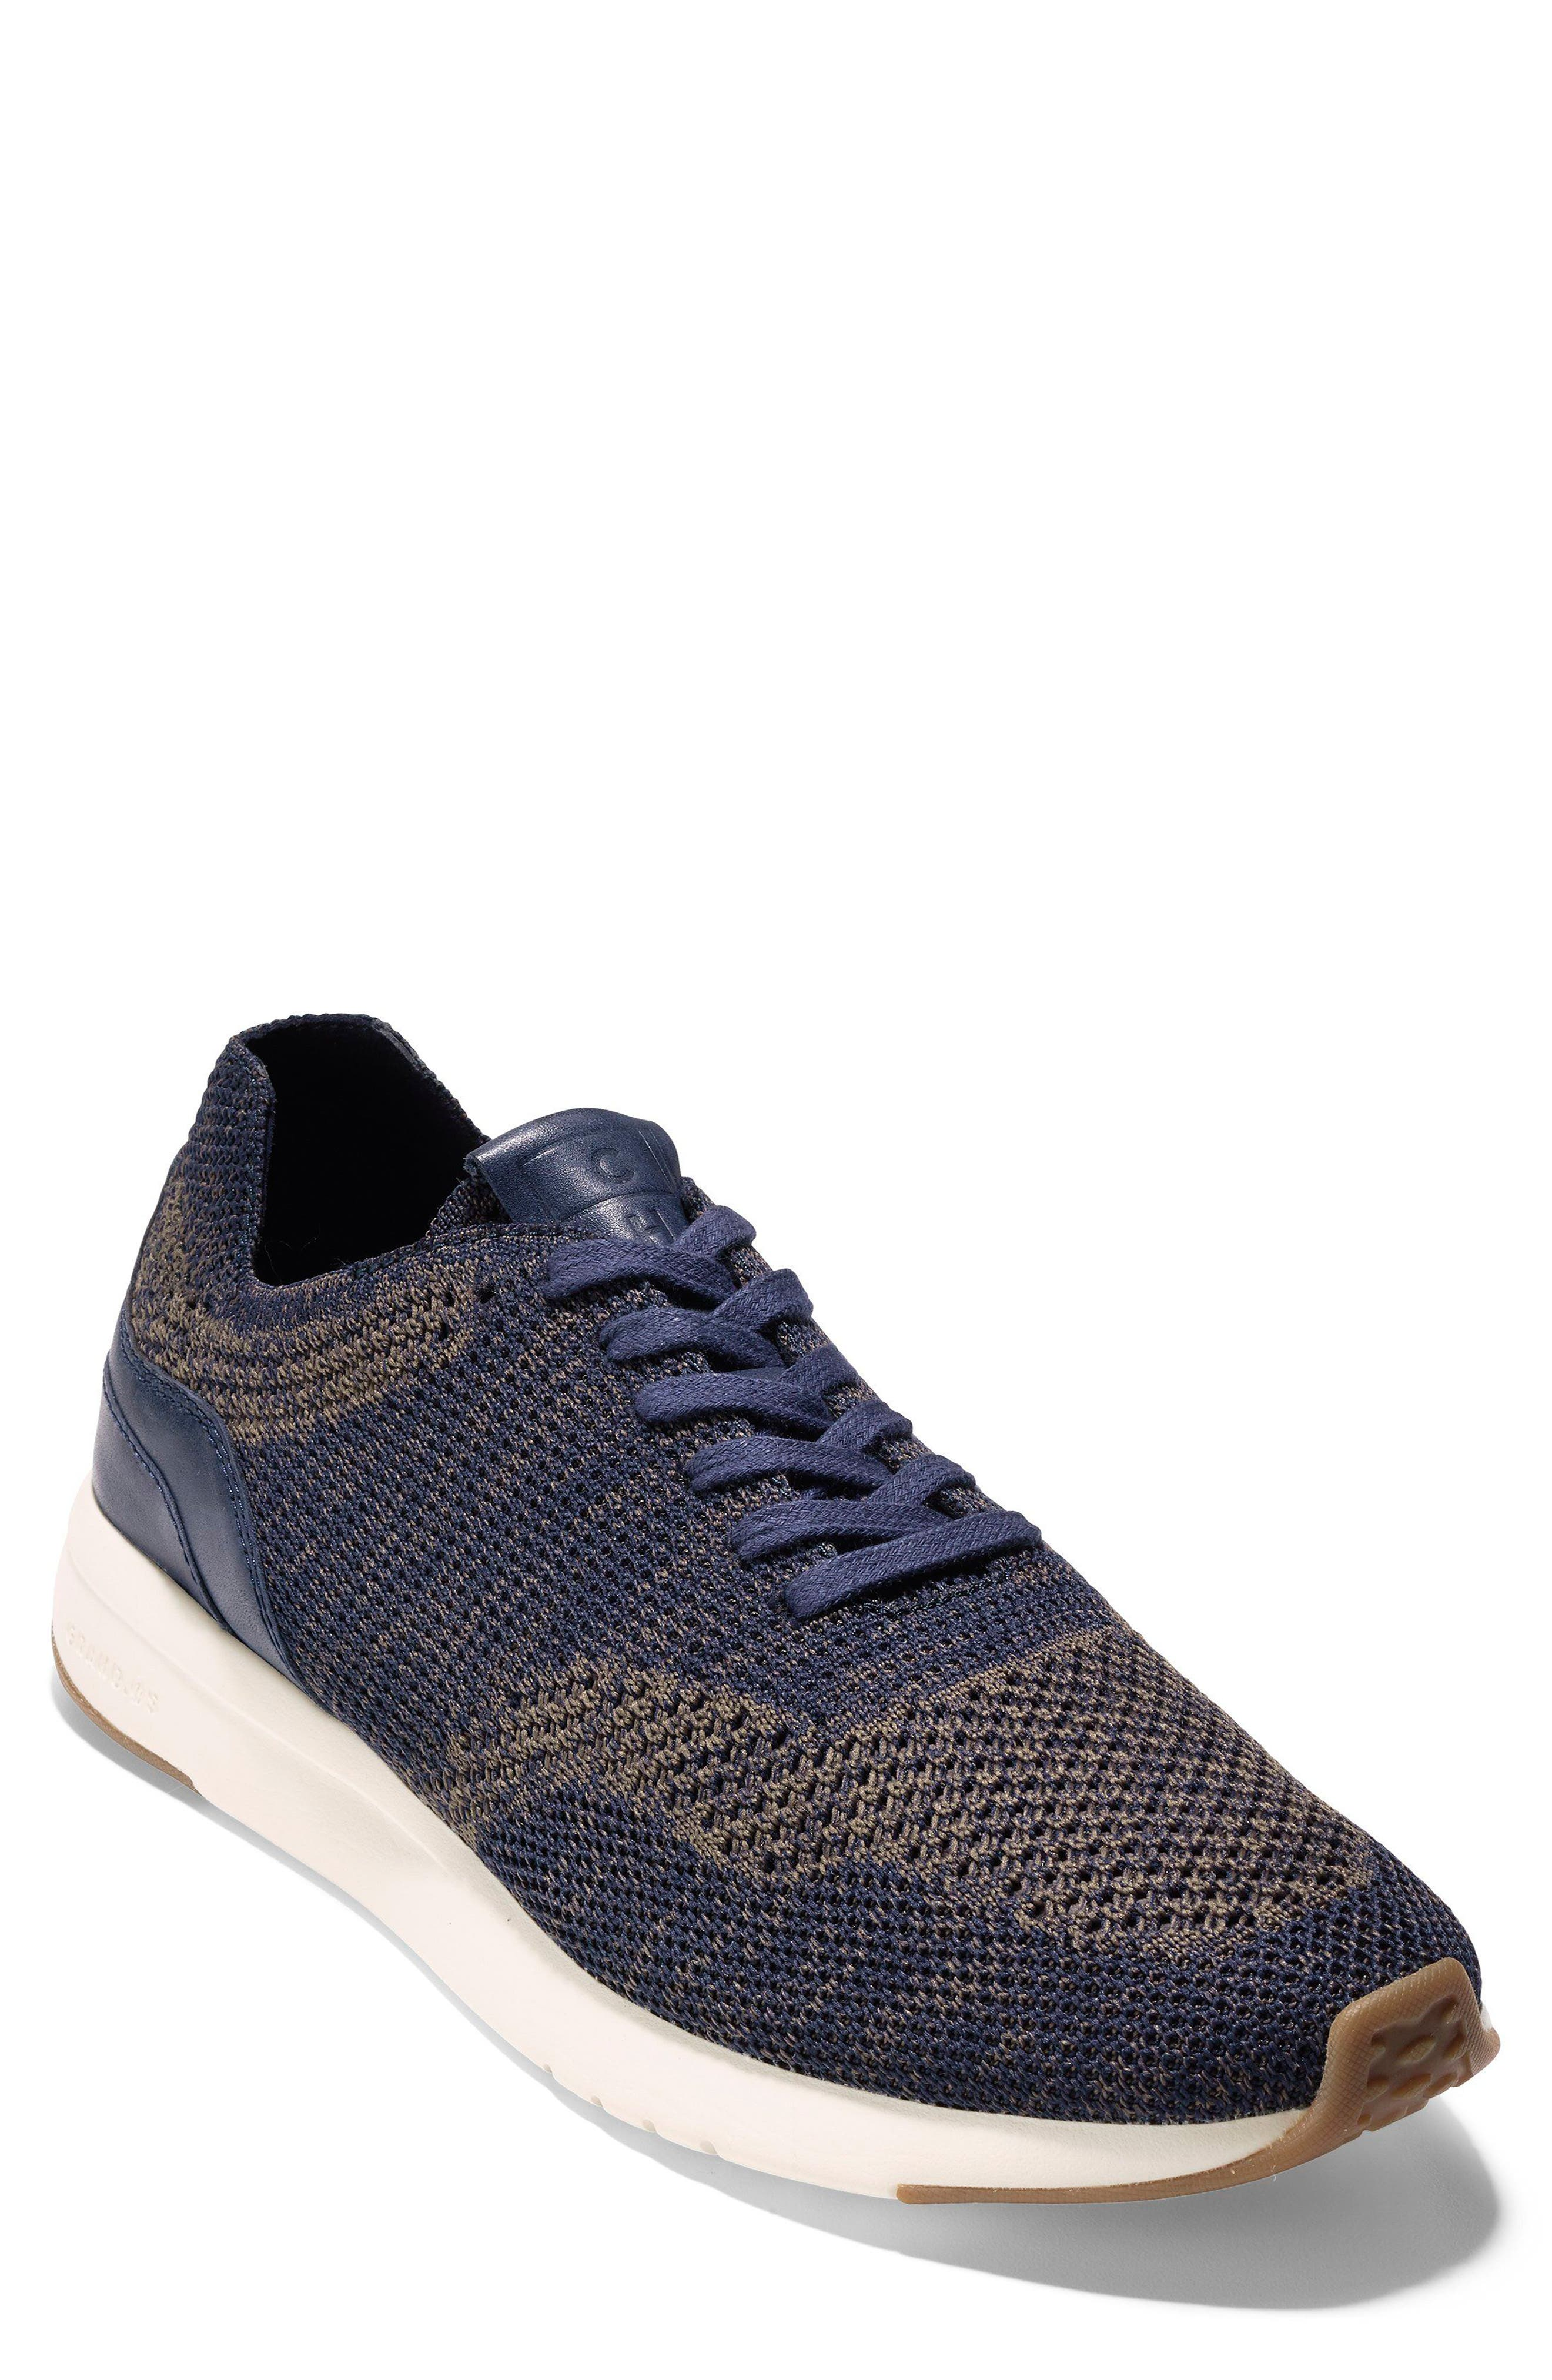 GrandPro Runner Stitchlite Sneaker,                         Main,                         color, Navy Peony / Morel